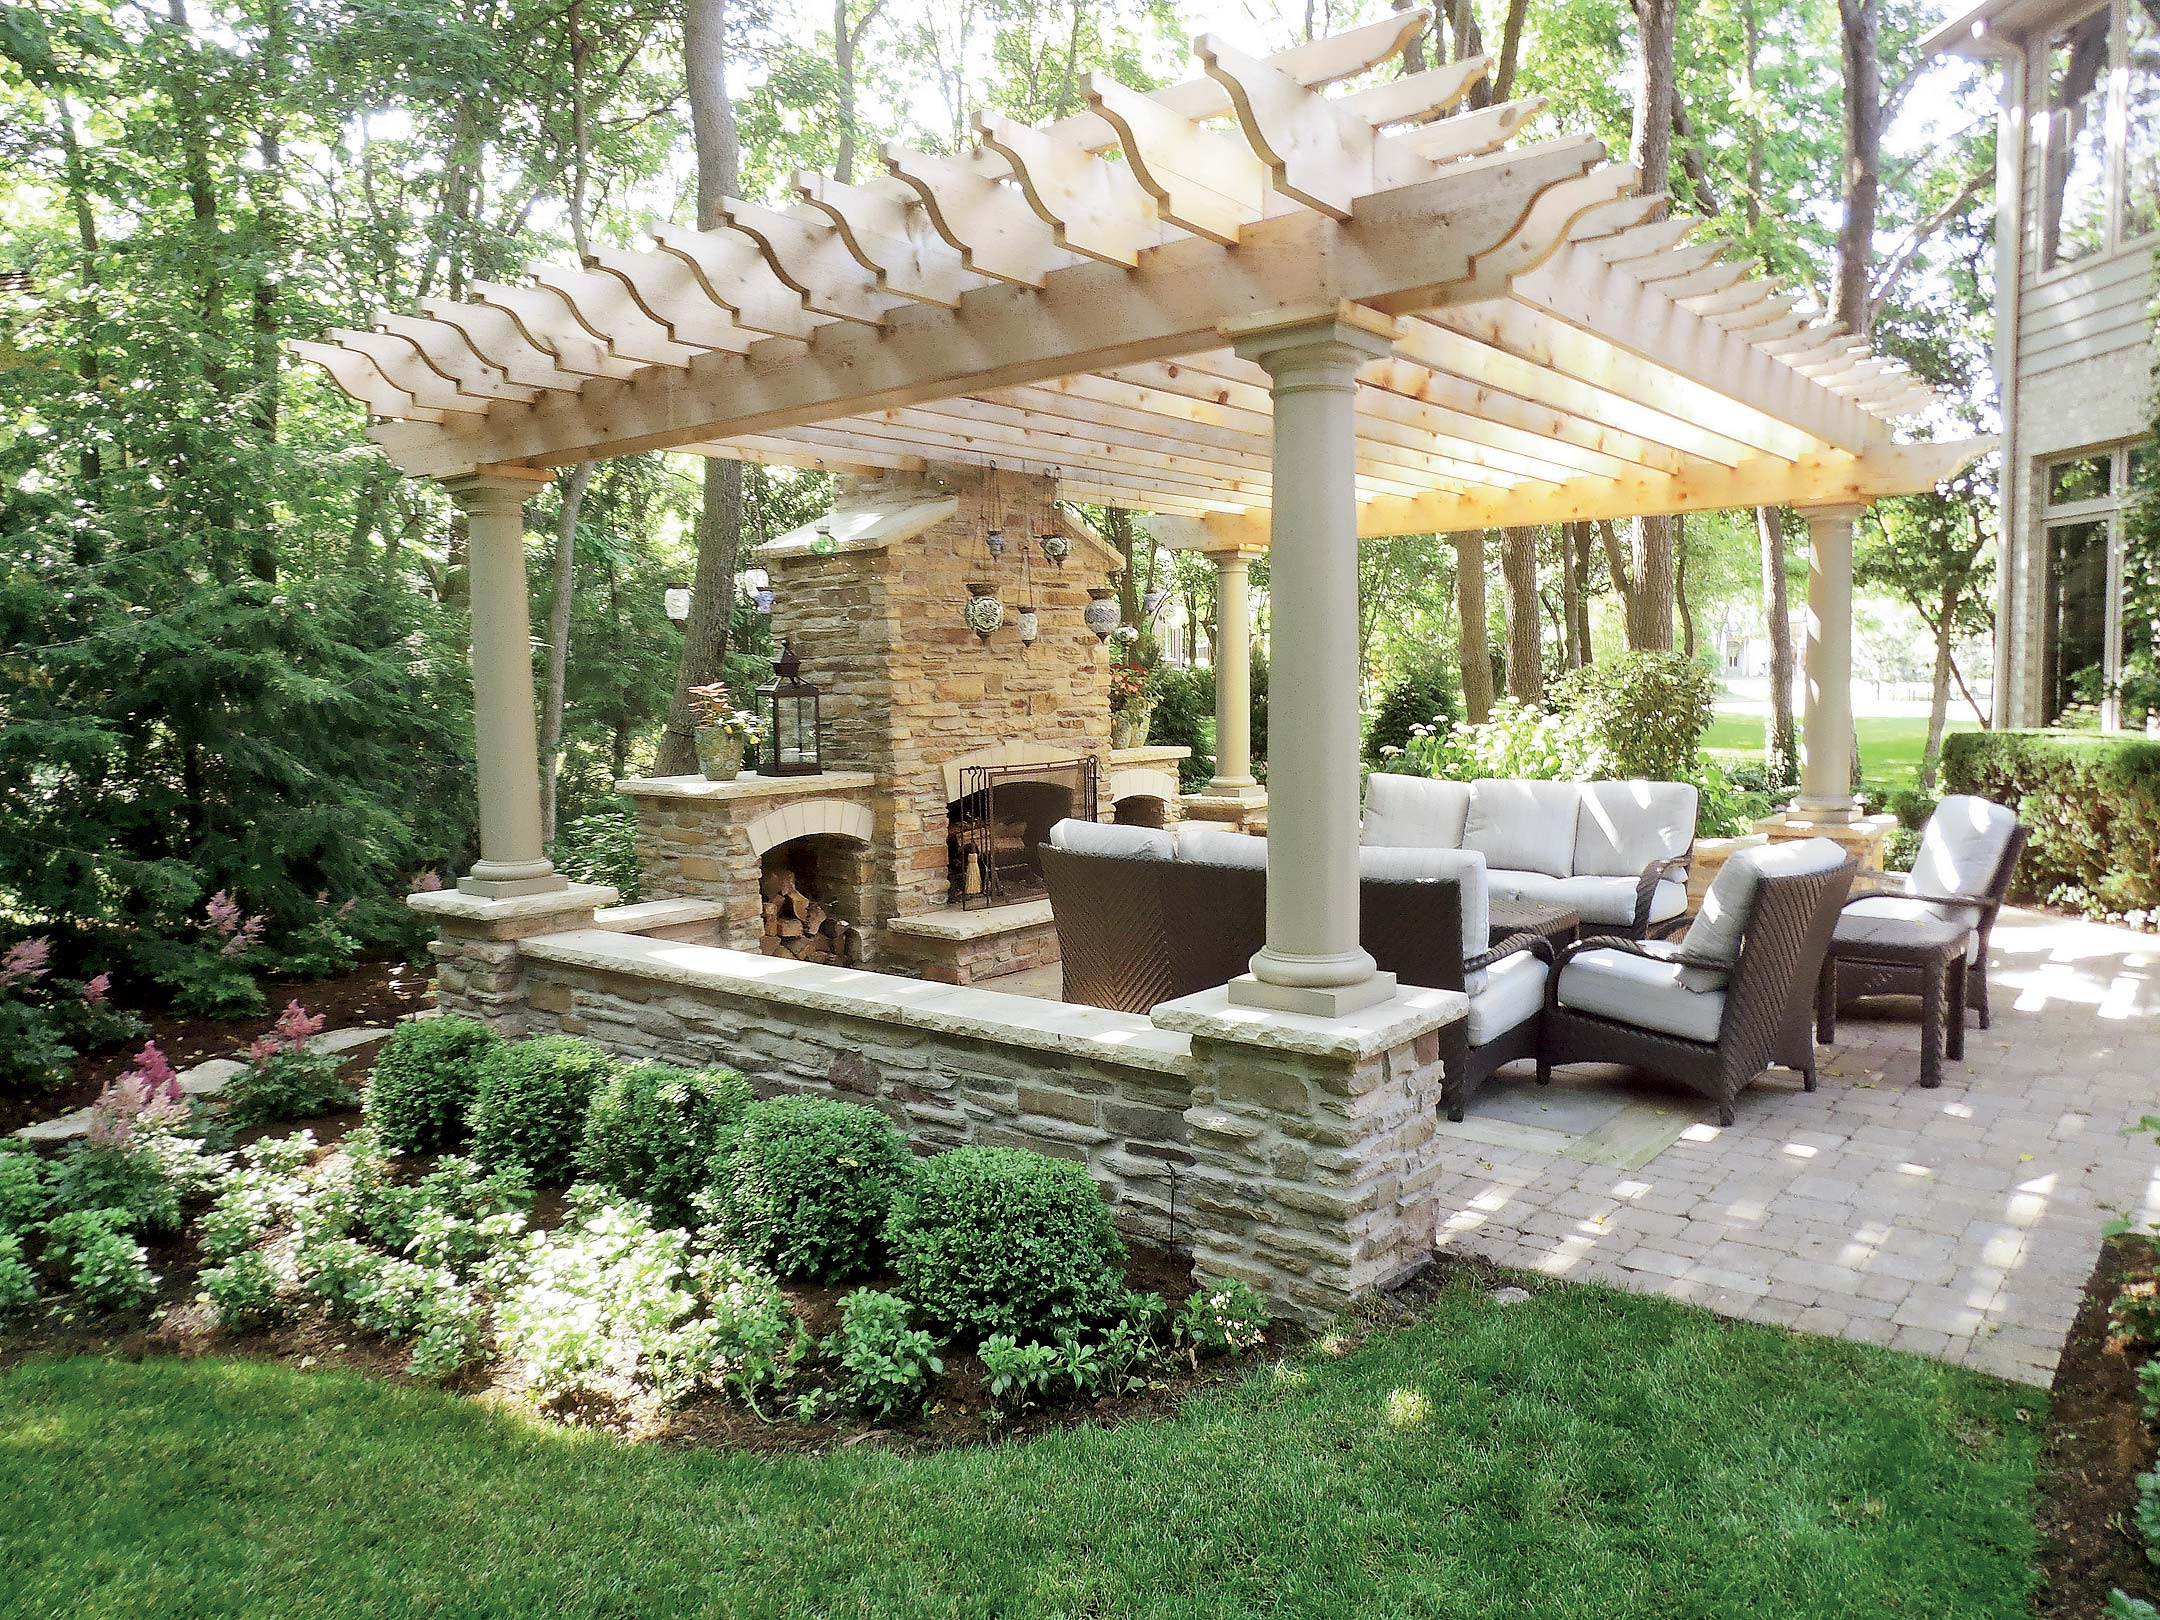 Backyard structures for entertaining for Back patio design ideas